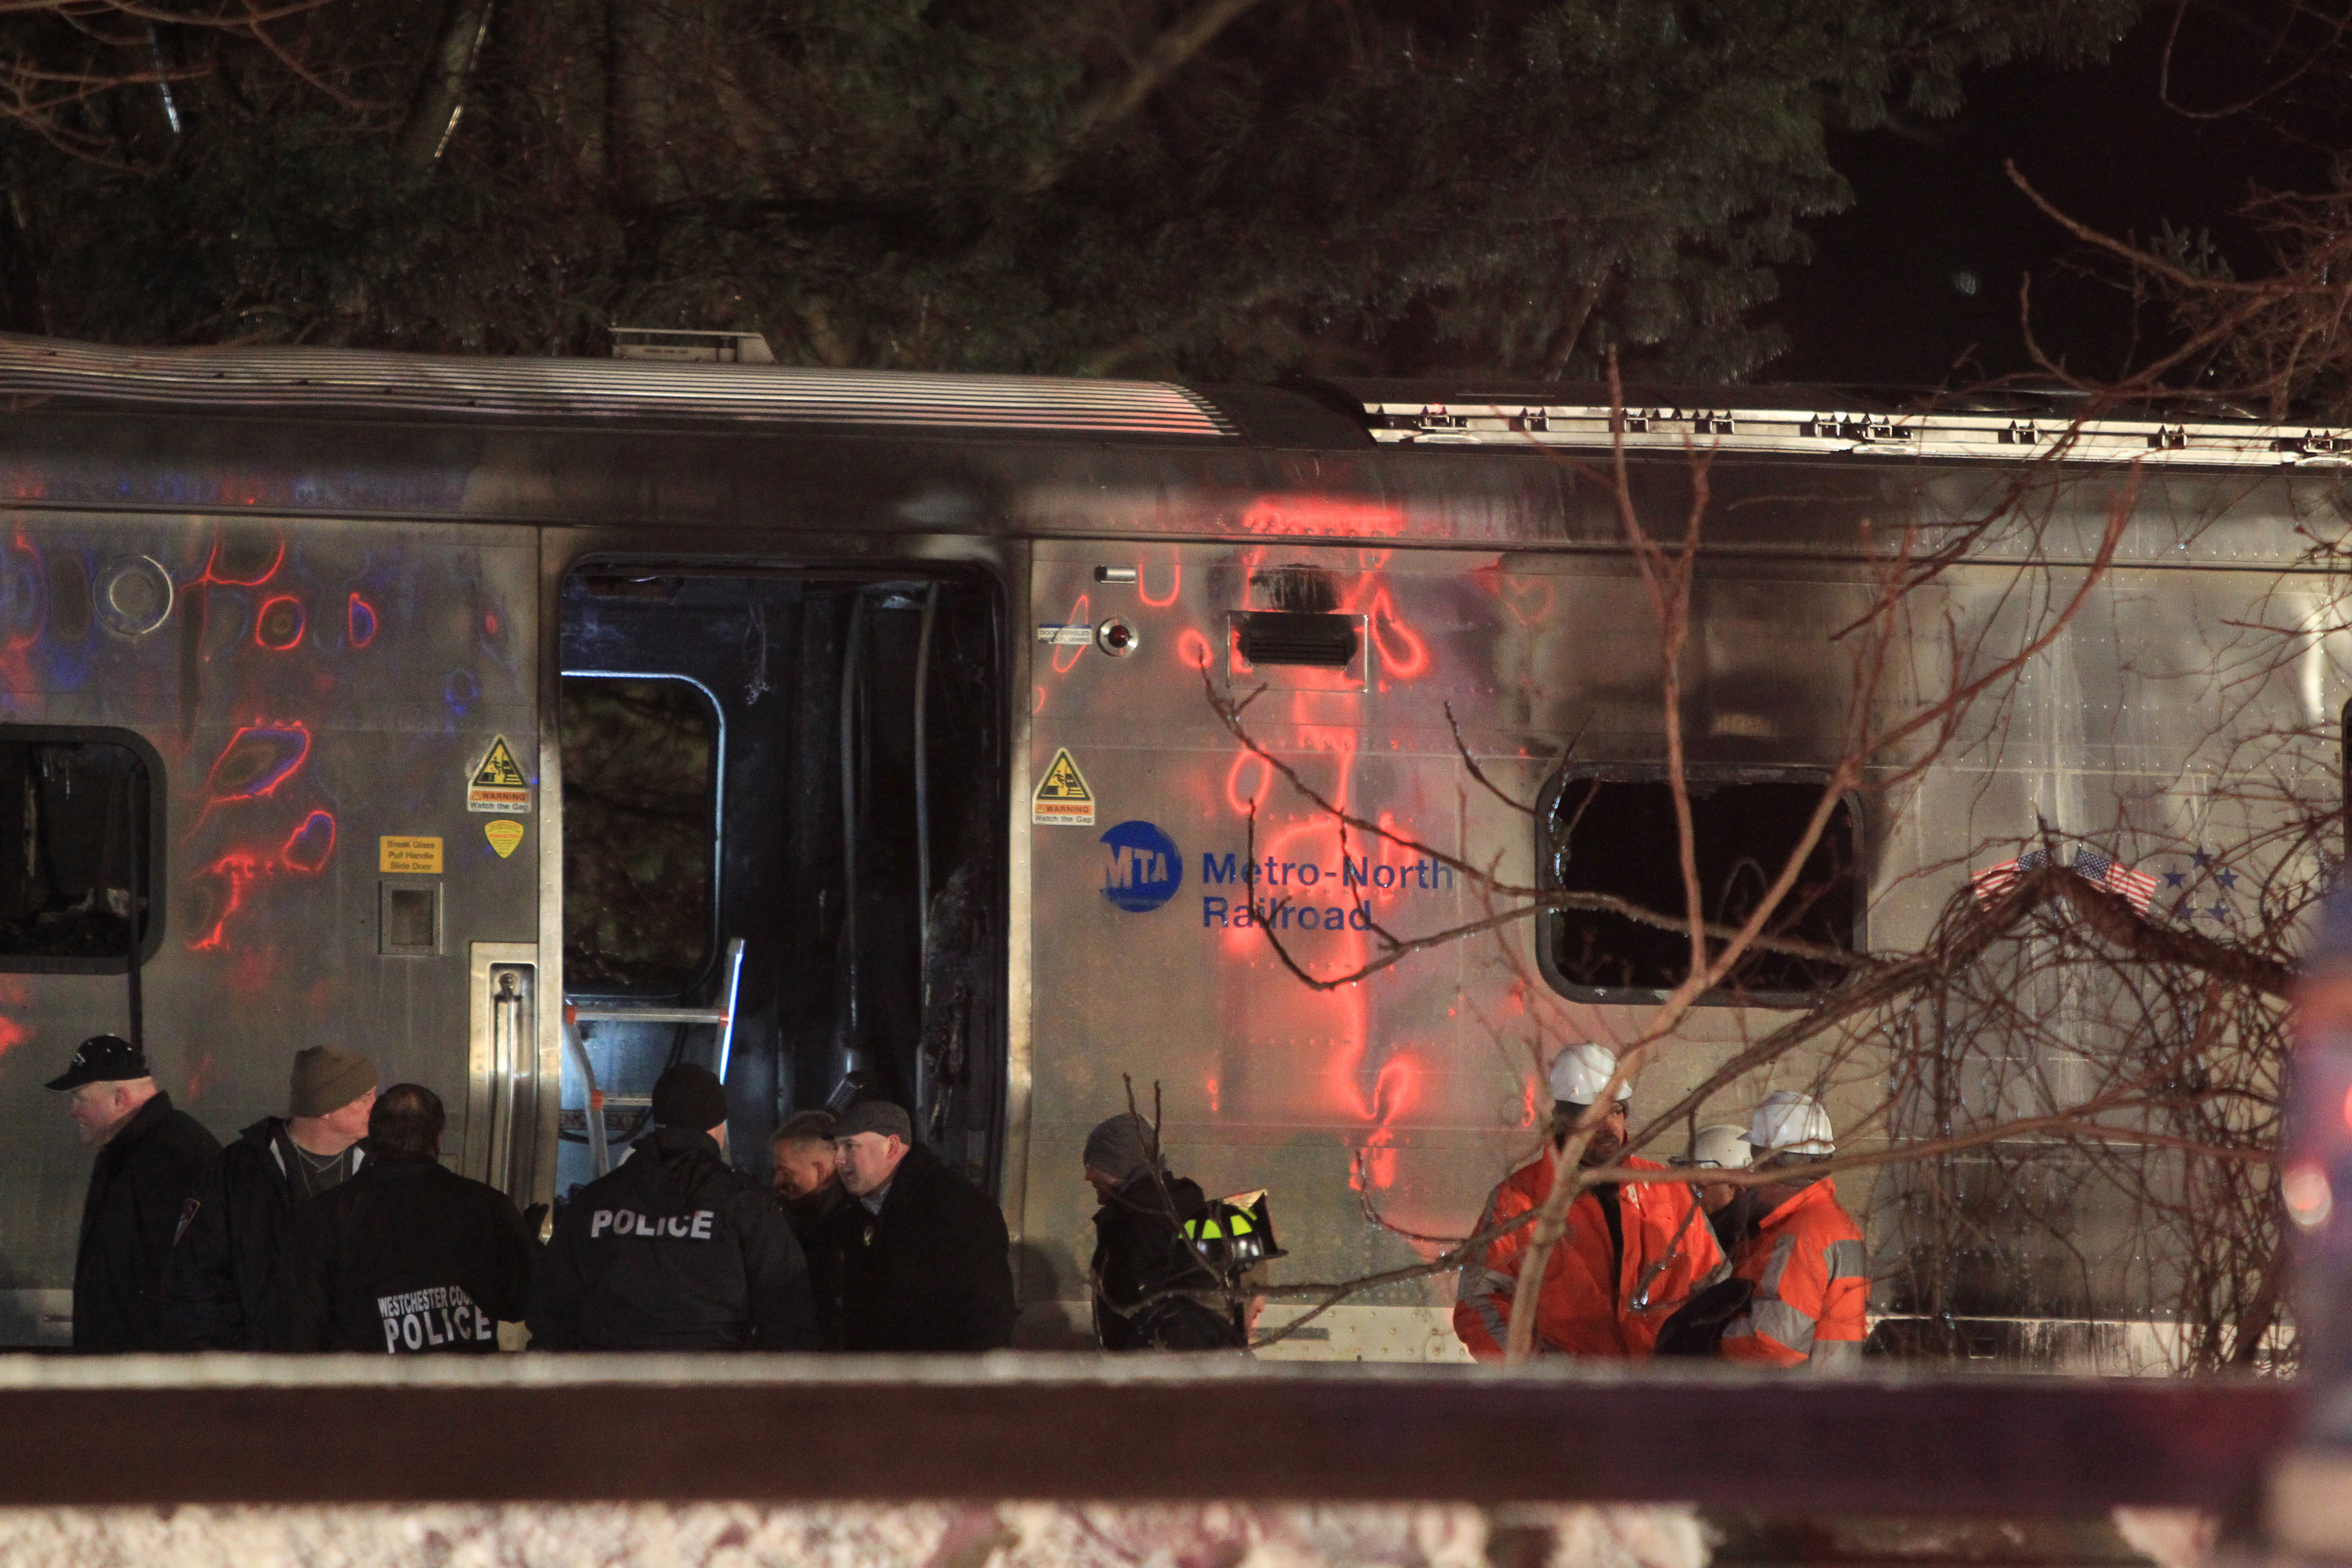 Emergency personnel work at the scene of a Metro-North Railroad passenger train and vehicle accident in Valhalla, N.Y., Tuesday, Feb. 3, 2015. Metro-North Railroad spokesman Aaron Donovan says the train struck a vehicle at a railroad crossing about 20 miles north of New York City. (AP Photo/Robert Mecea)